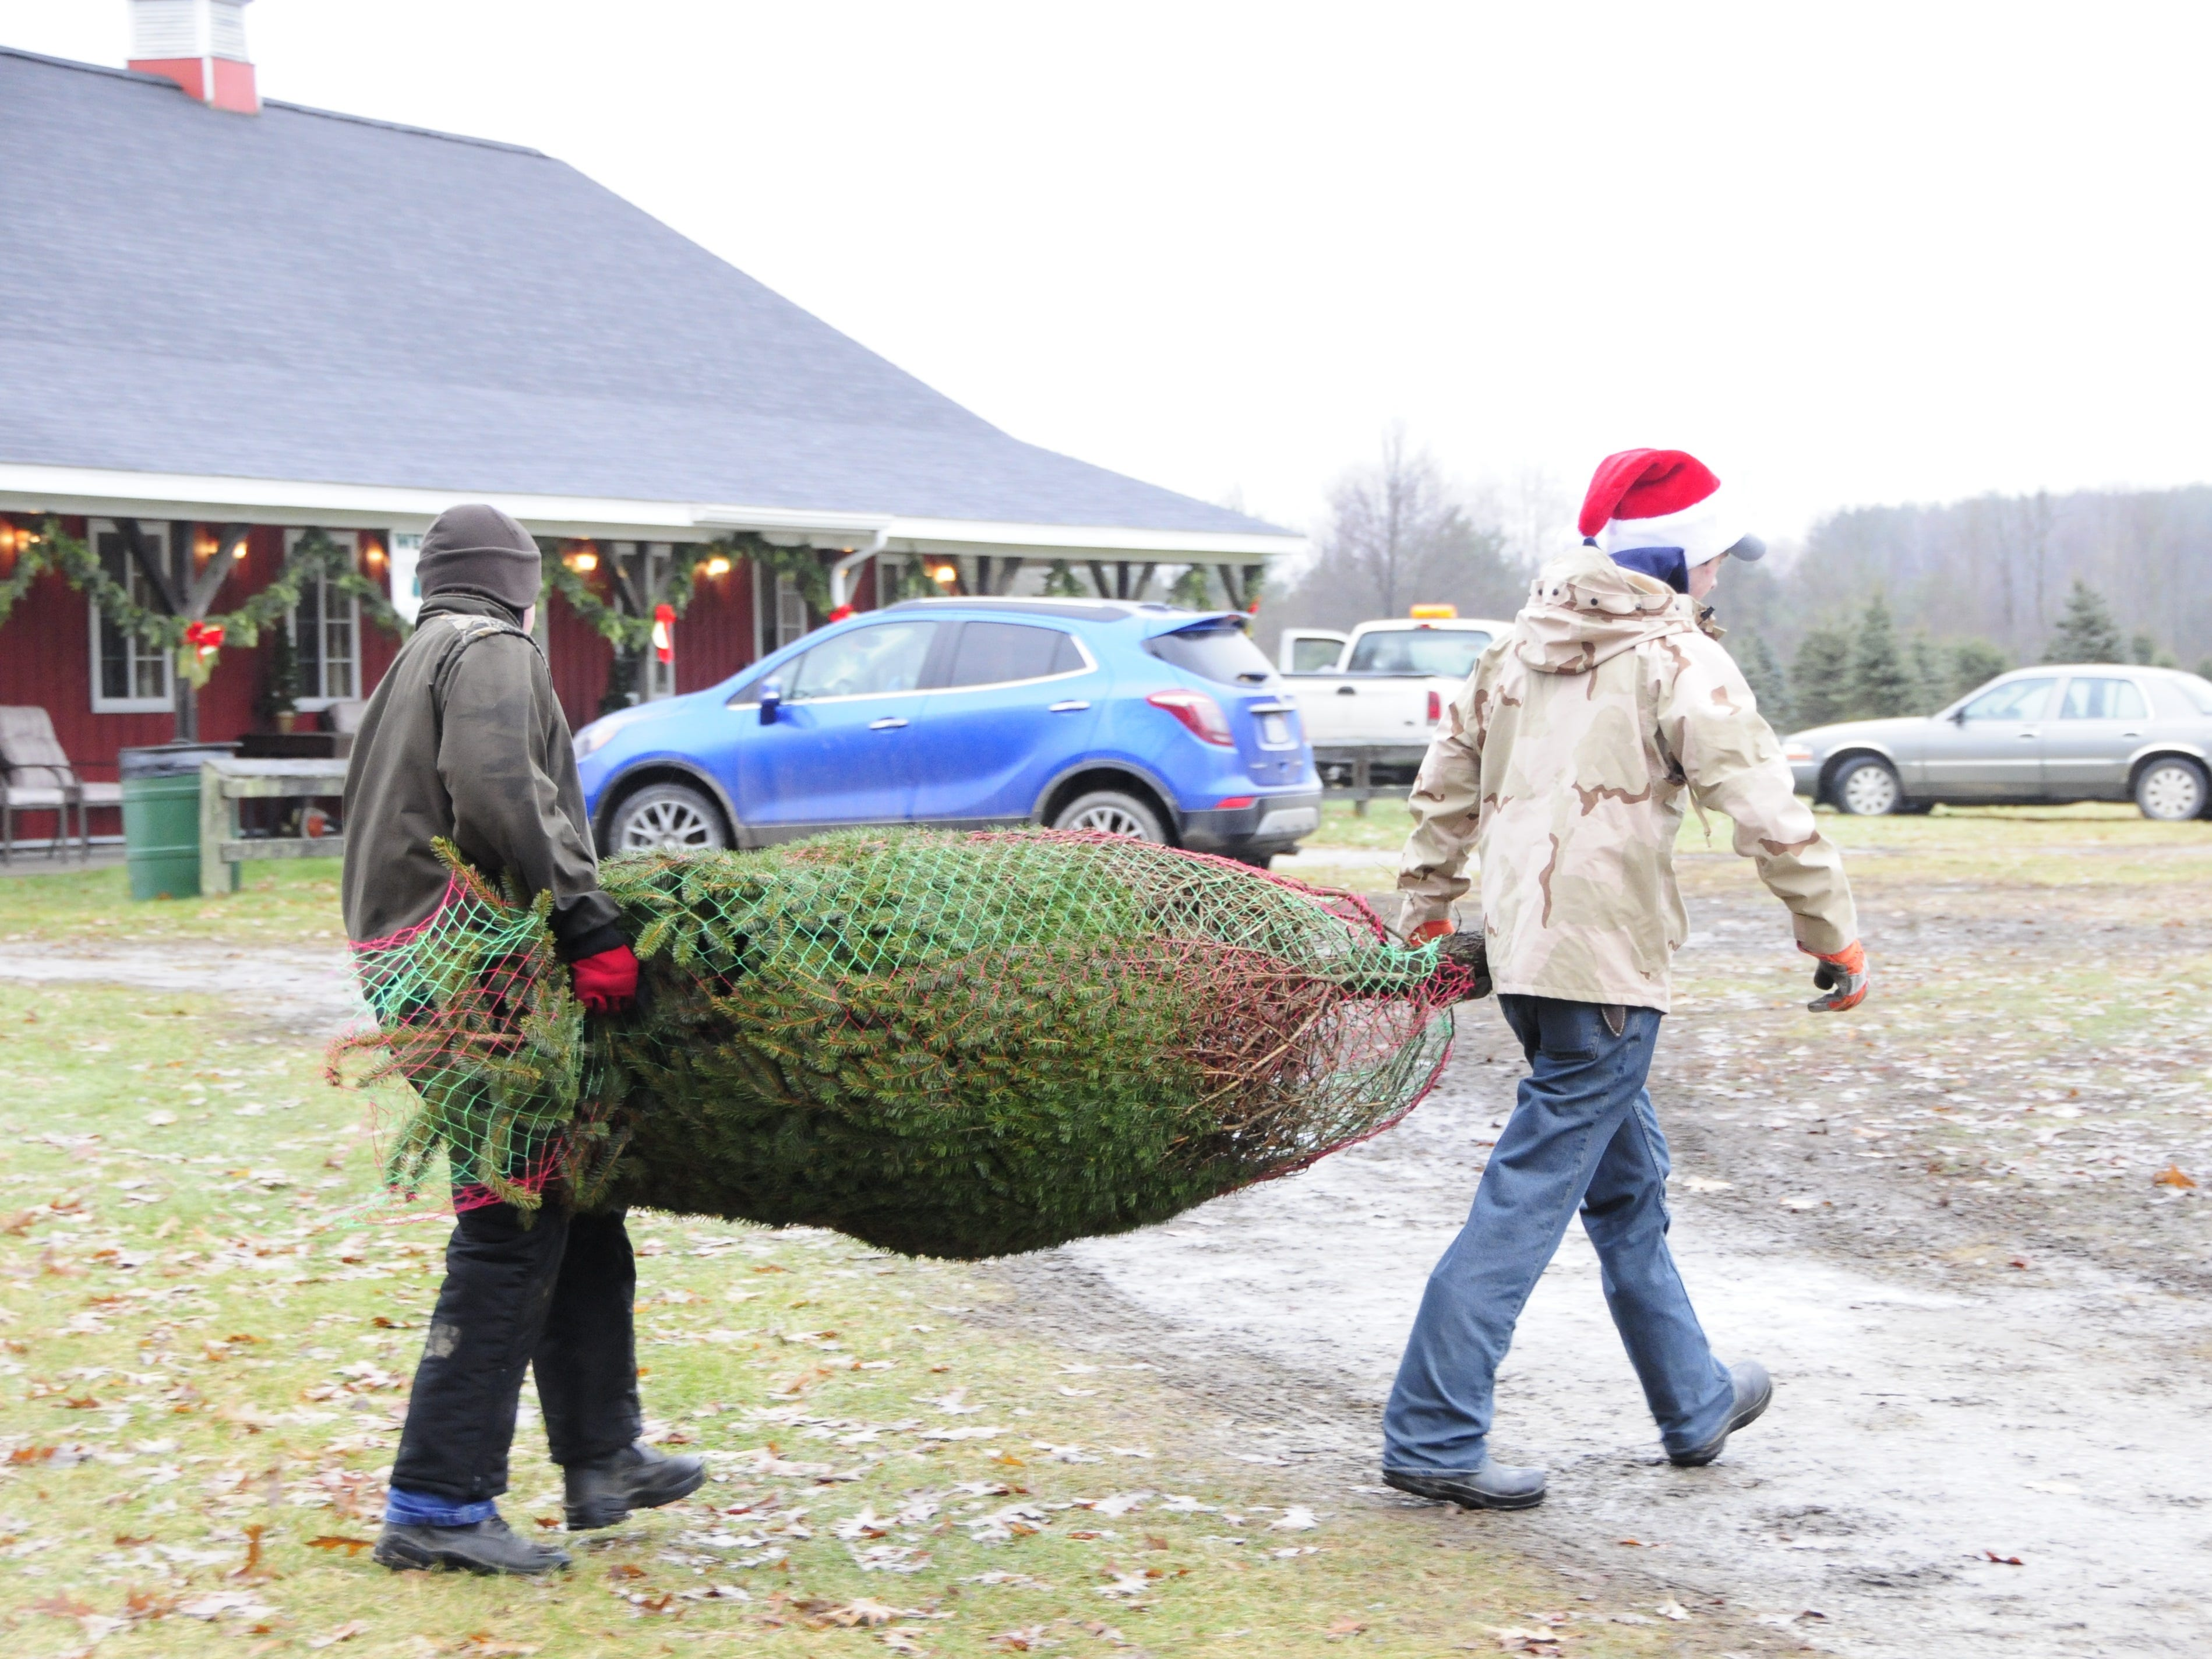 Ian Dunsmore, left, and Josh Green carry a wrapped Christmas tree to a customer's vehicle at Dunsmore Blue Spruce Tree Farm in Smiths Creek.